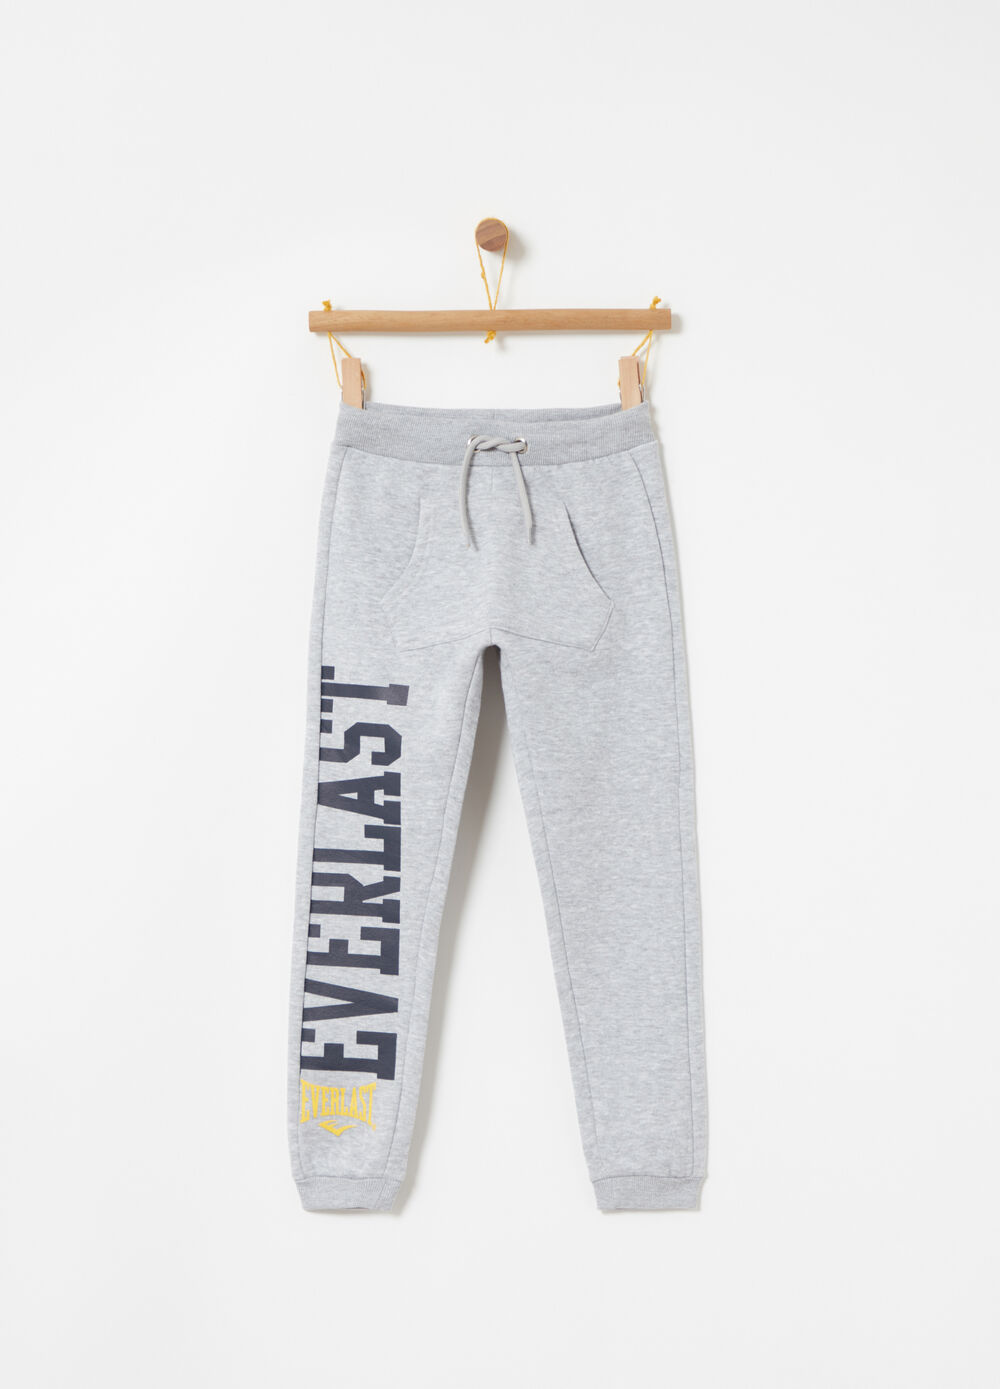 Everlast heavy fabric trousers